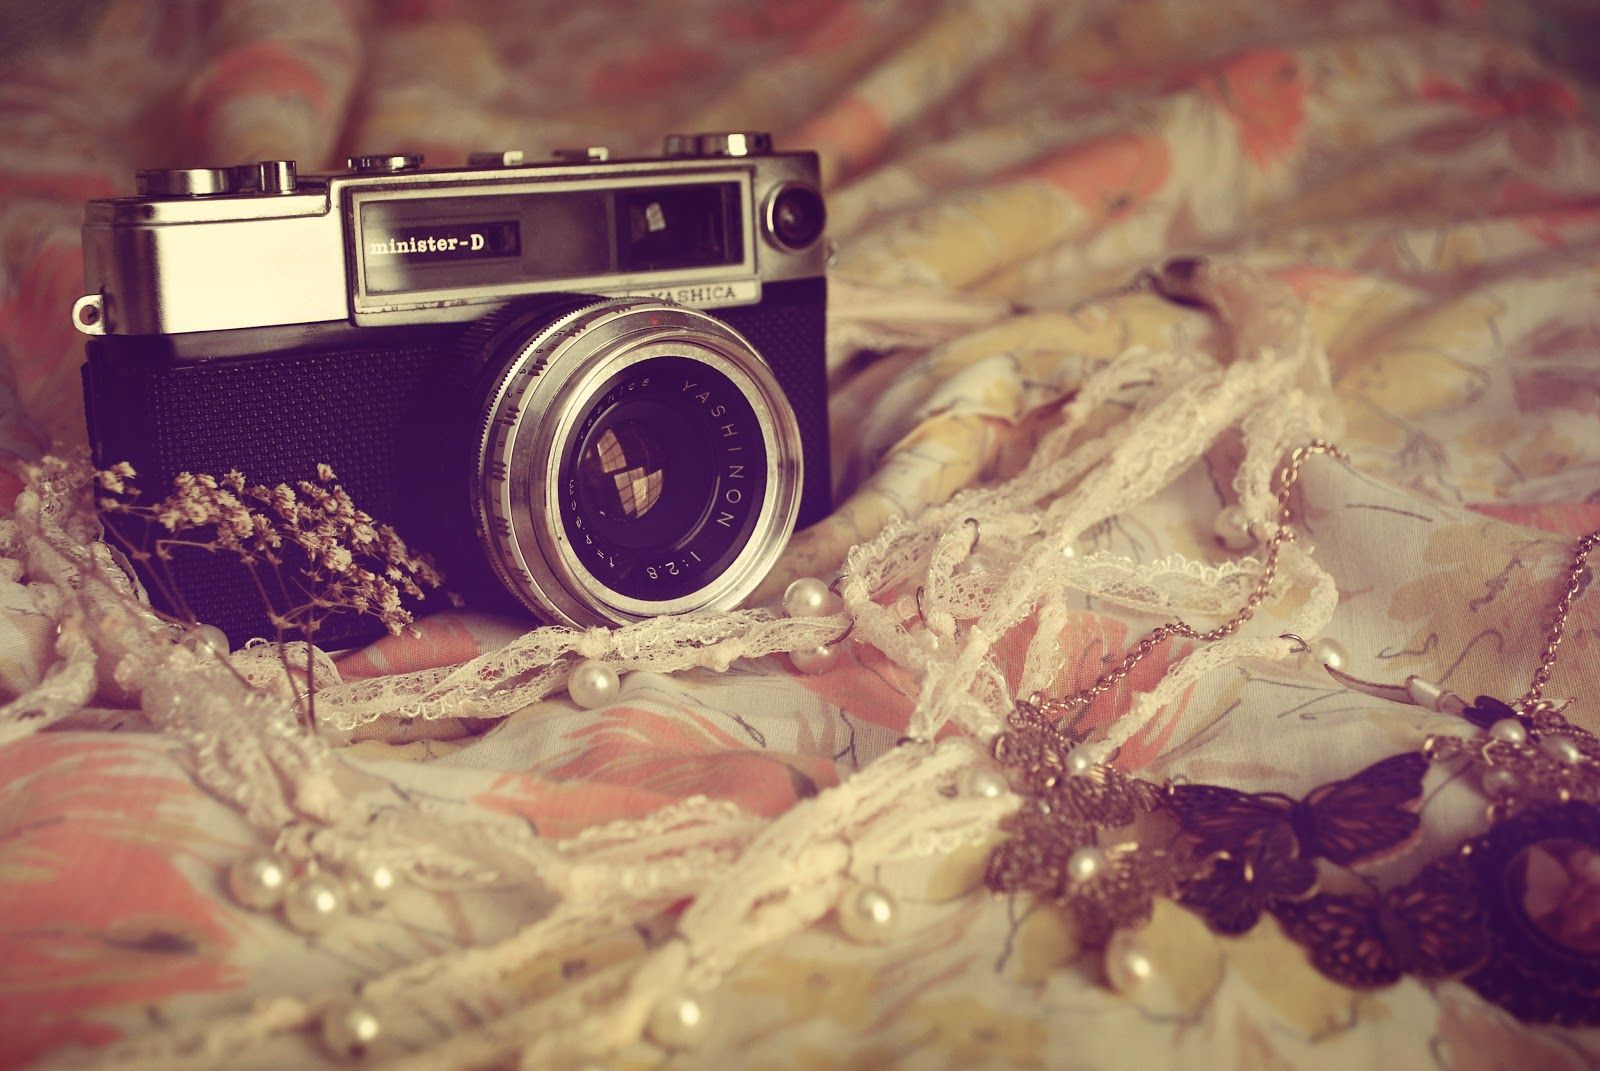 Camera Vintage Tumblr : Vintage tumblr things pictures and ideas on carver museum